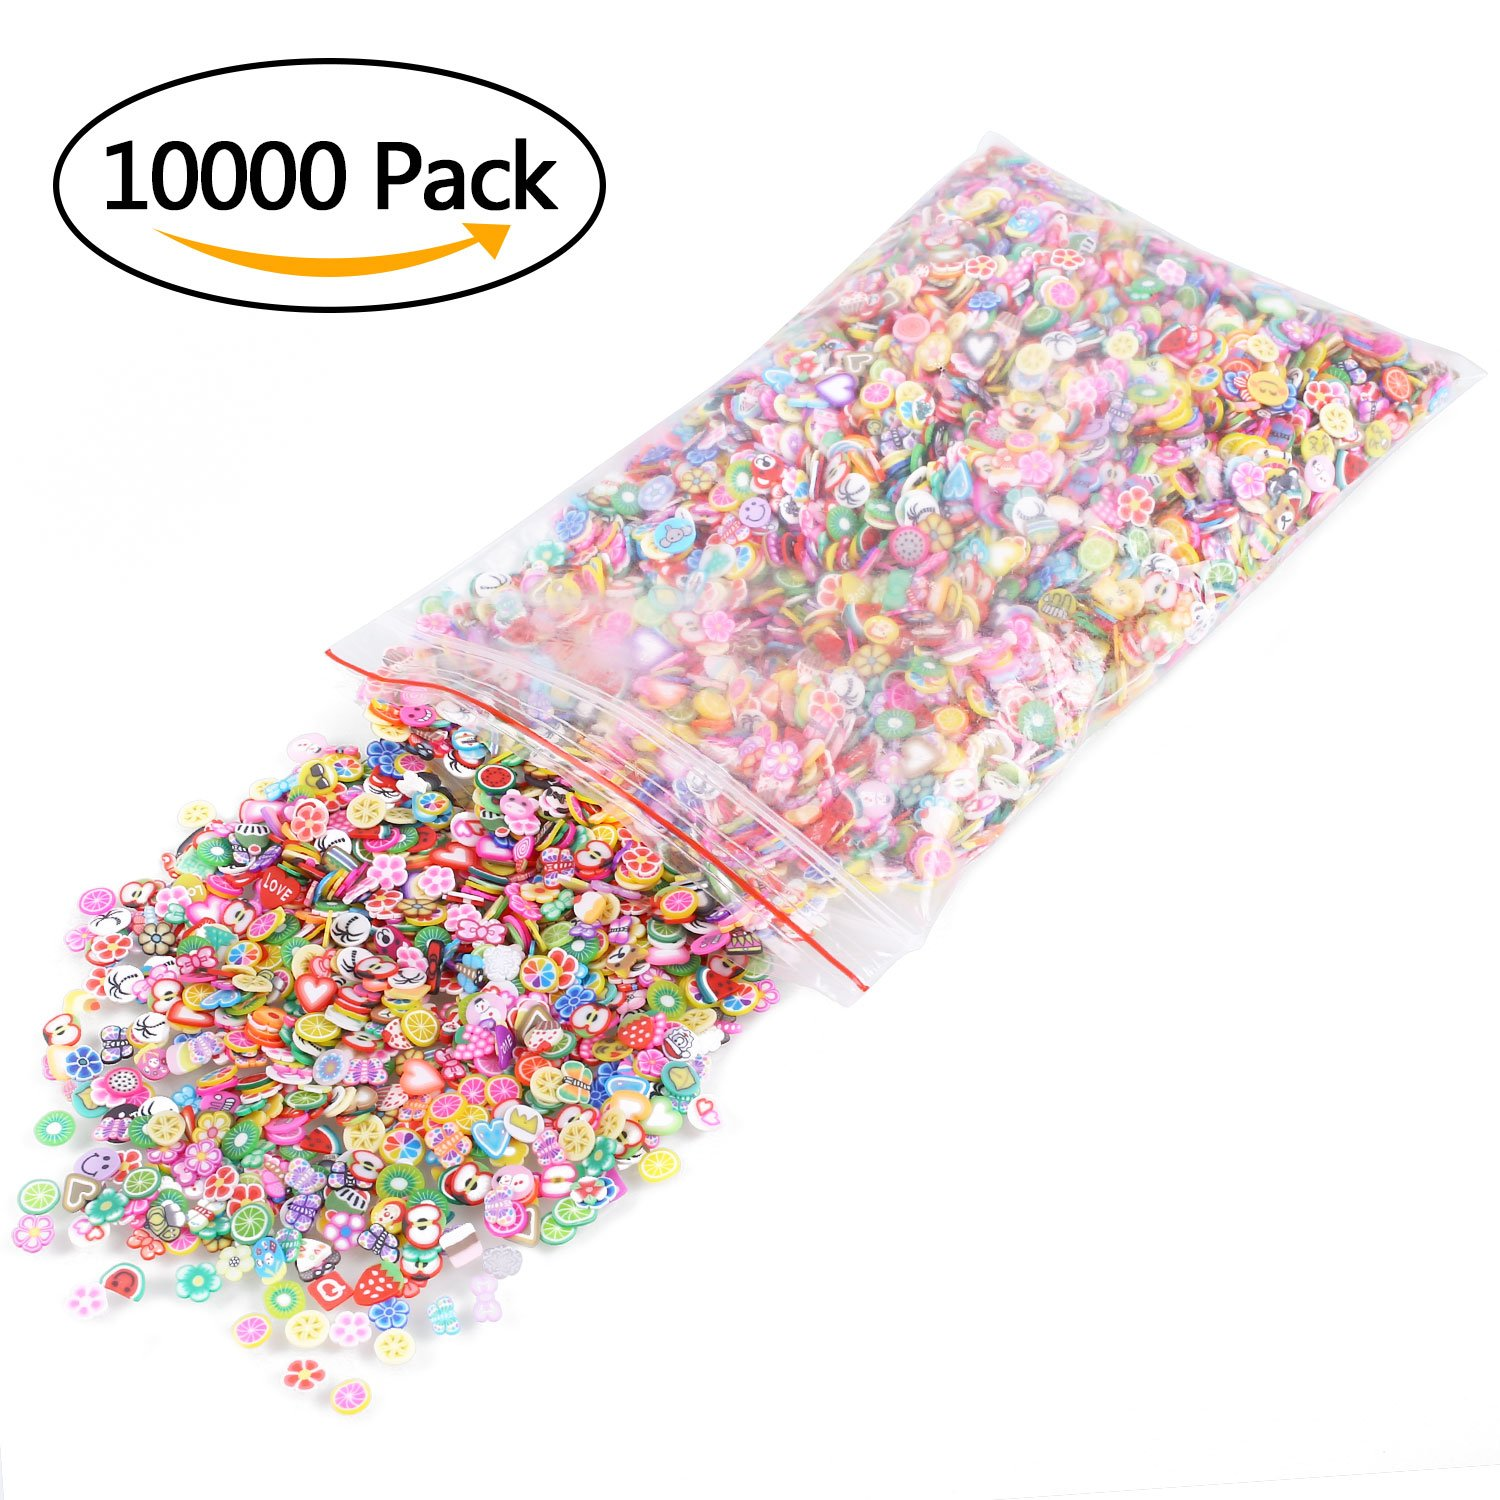 Molain 10000PCS Nail Slices 3D Fimo Fruits Animals Flowers Santas Emoji Nail Art Stickers Assorted Color